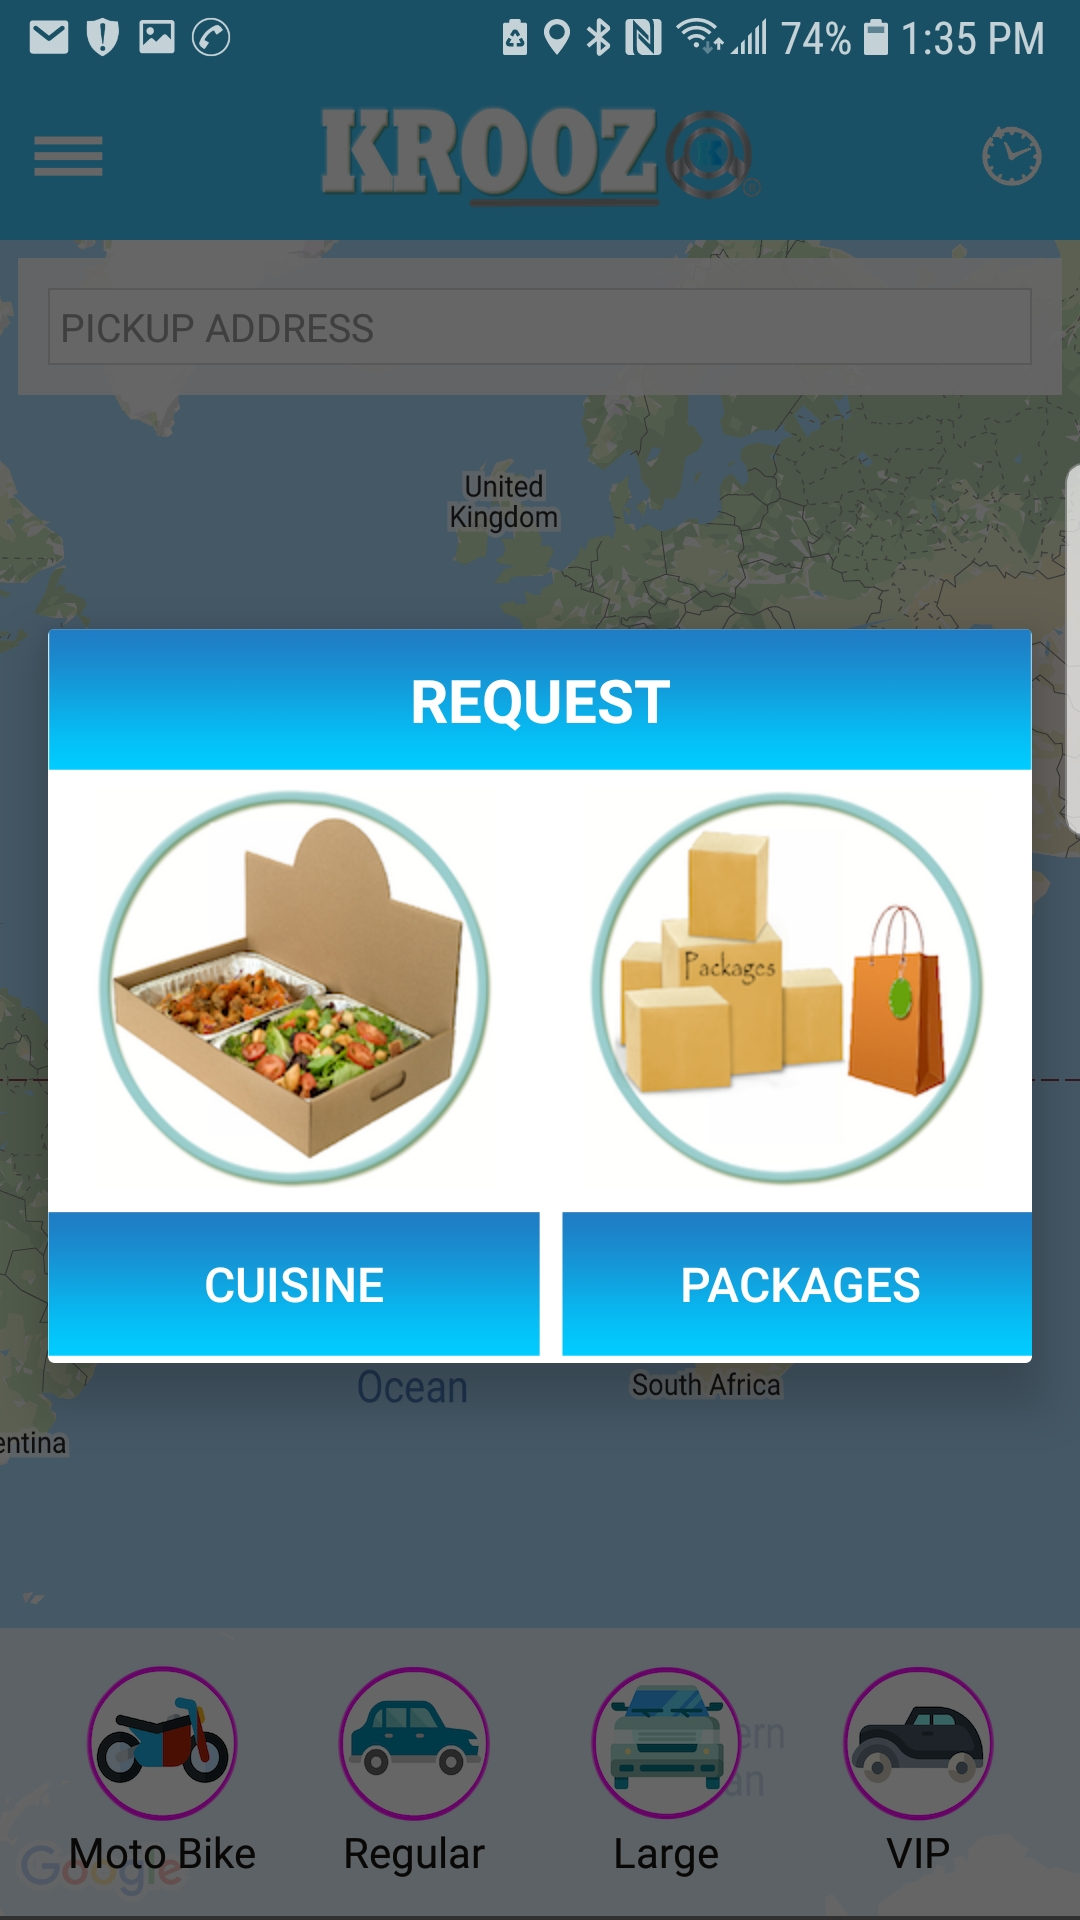 Request Cuisine or Packages